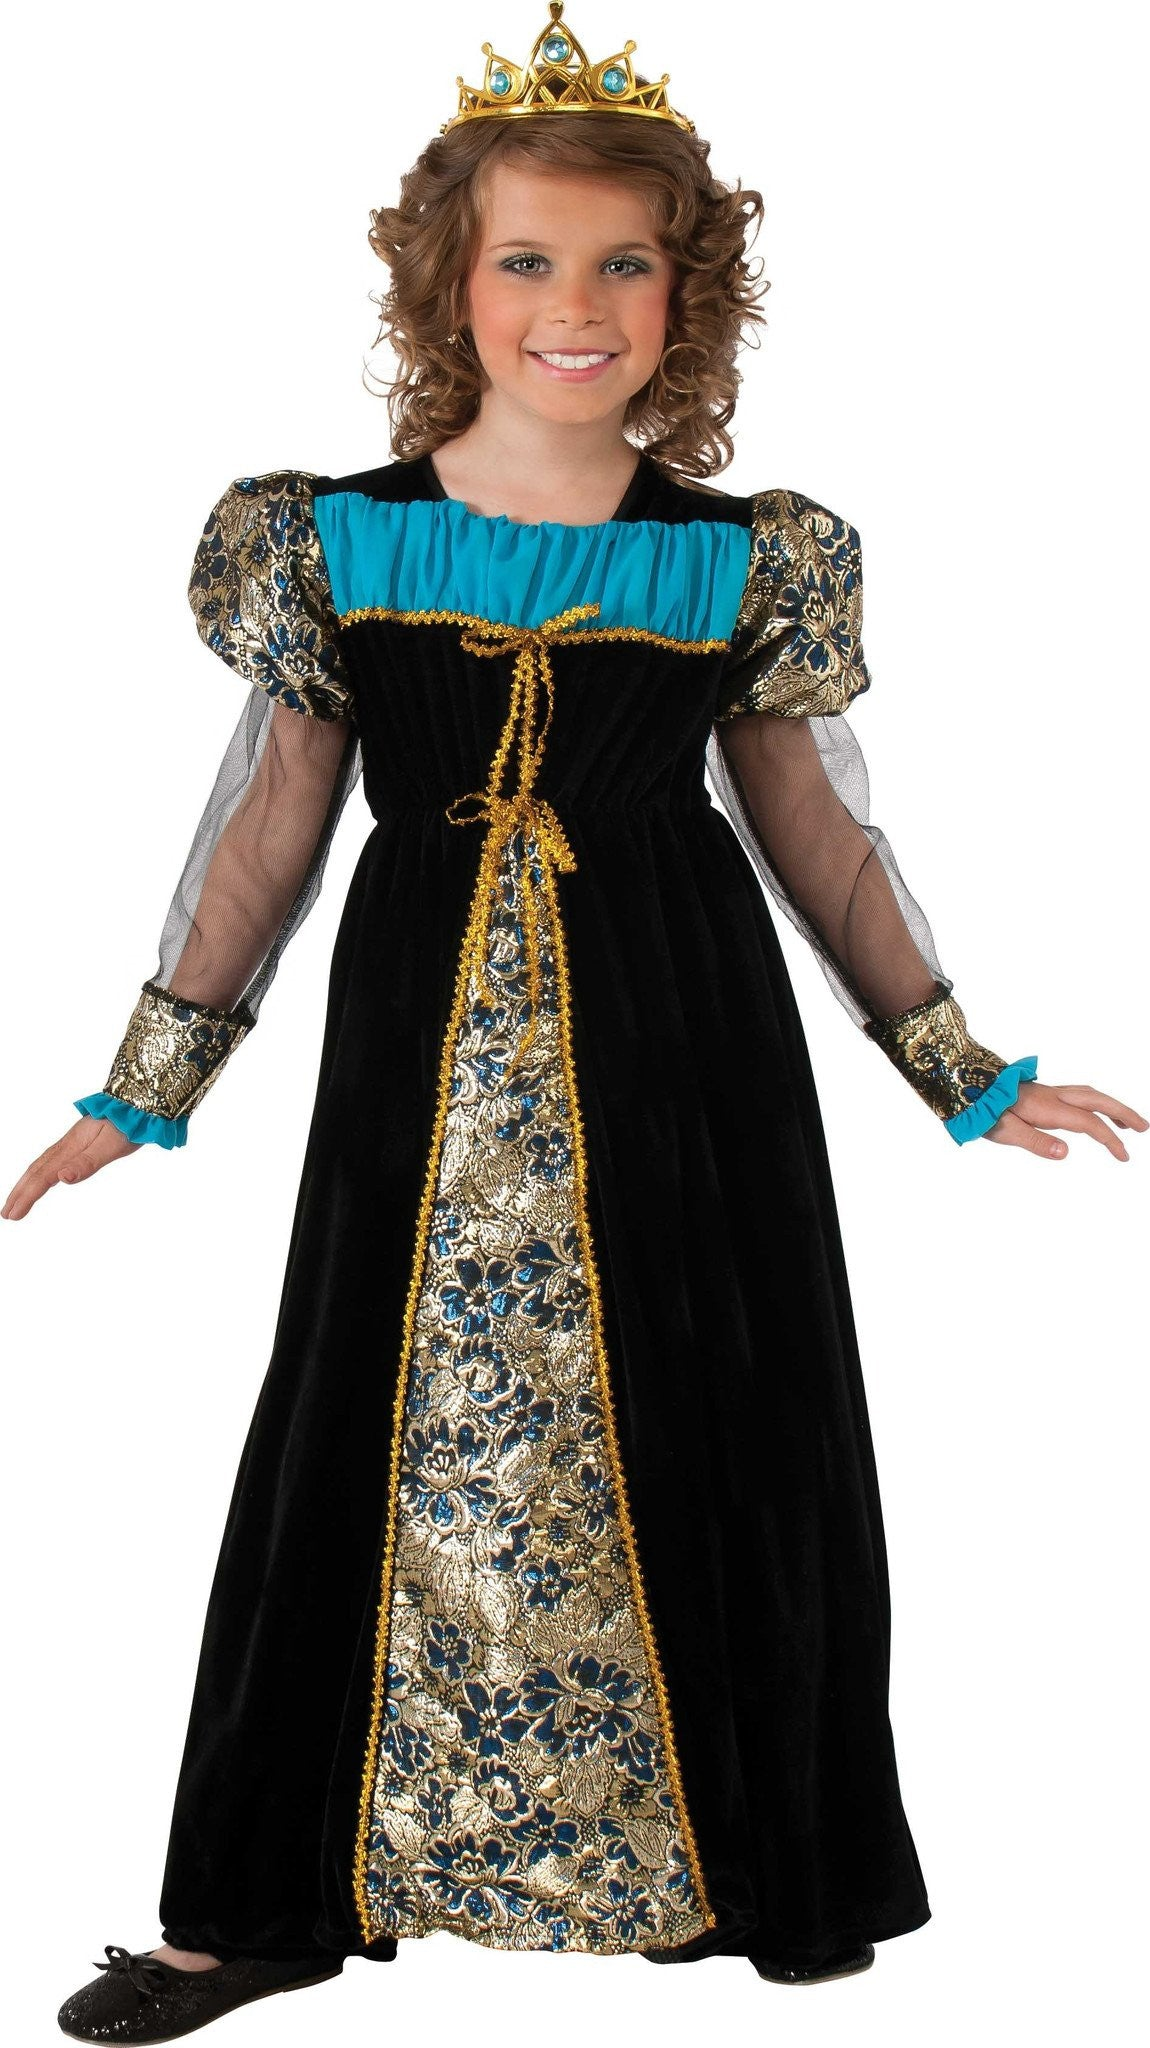 BLACK CAMELOT PRINCESS COSTUME, CHILD - VARIOUS SIZES